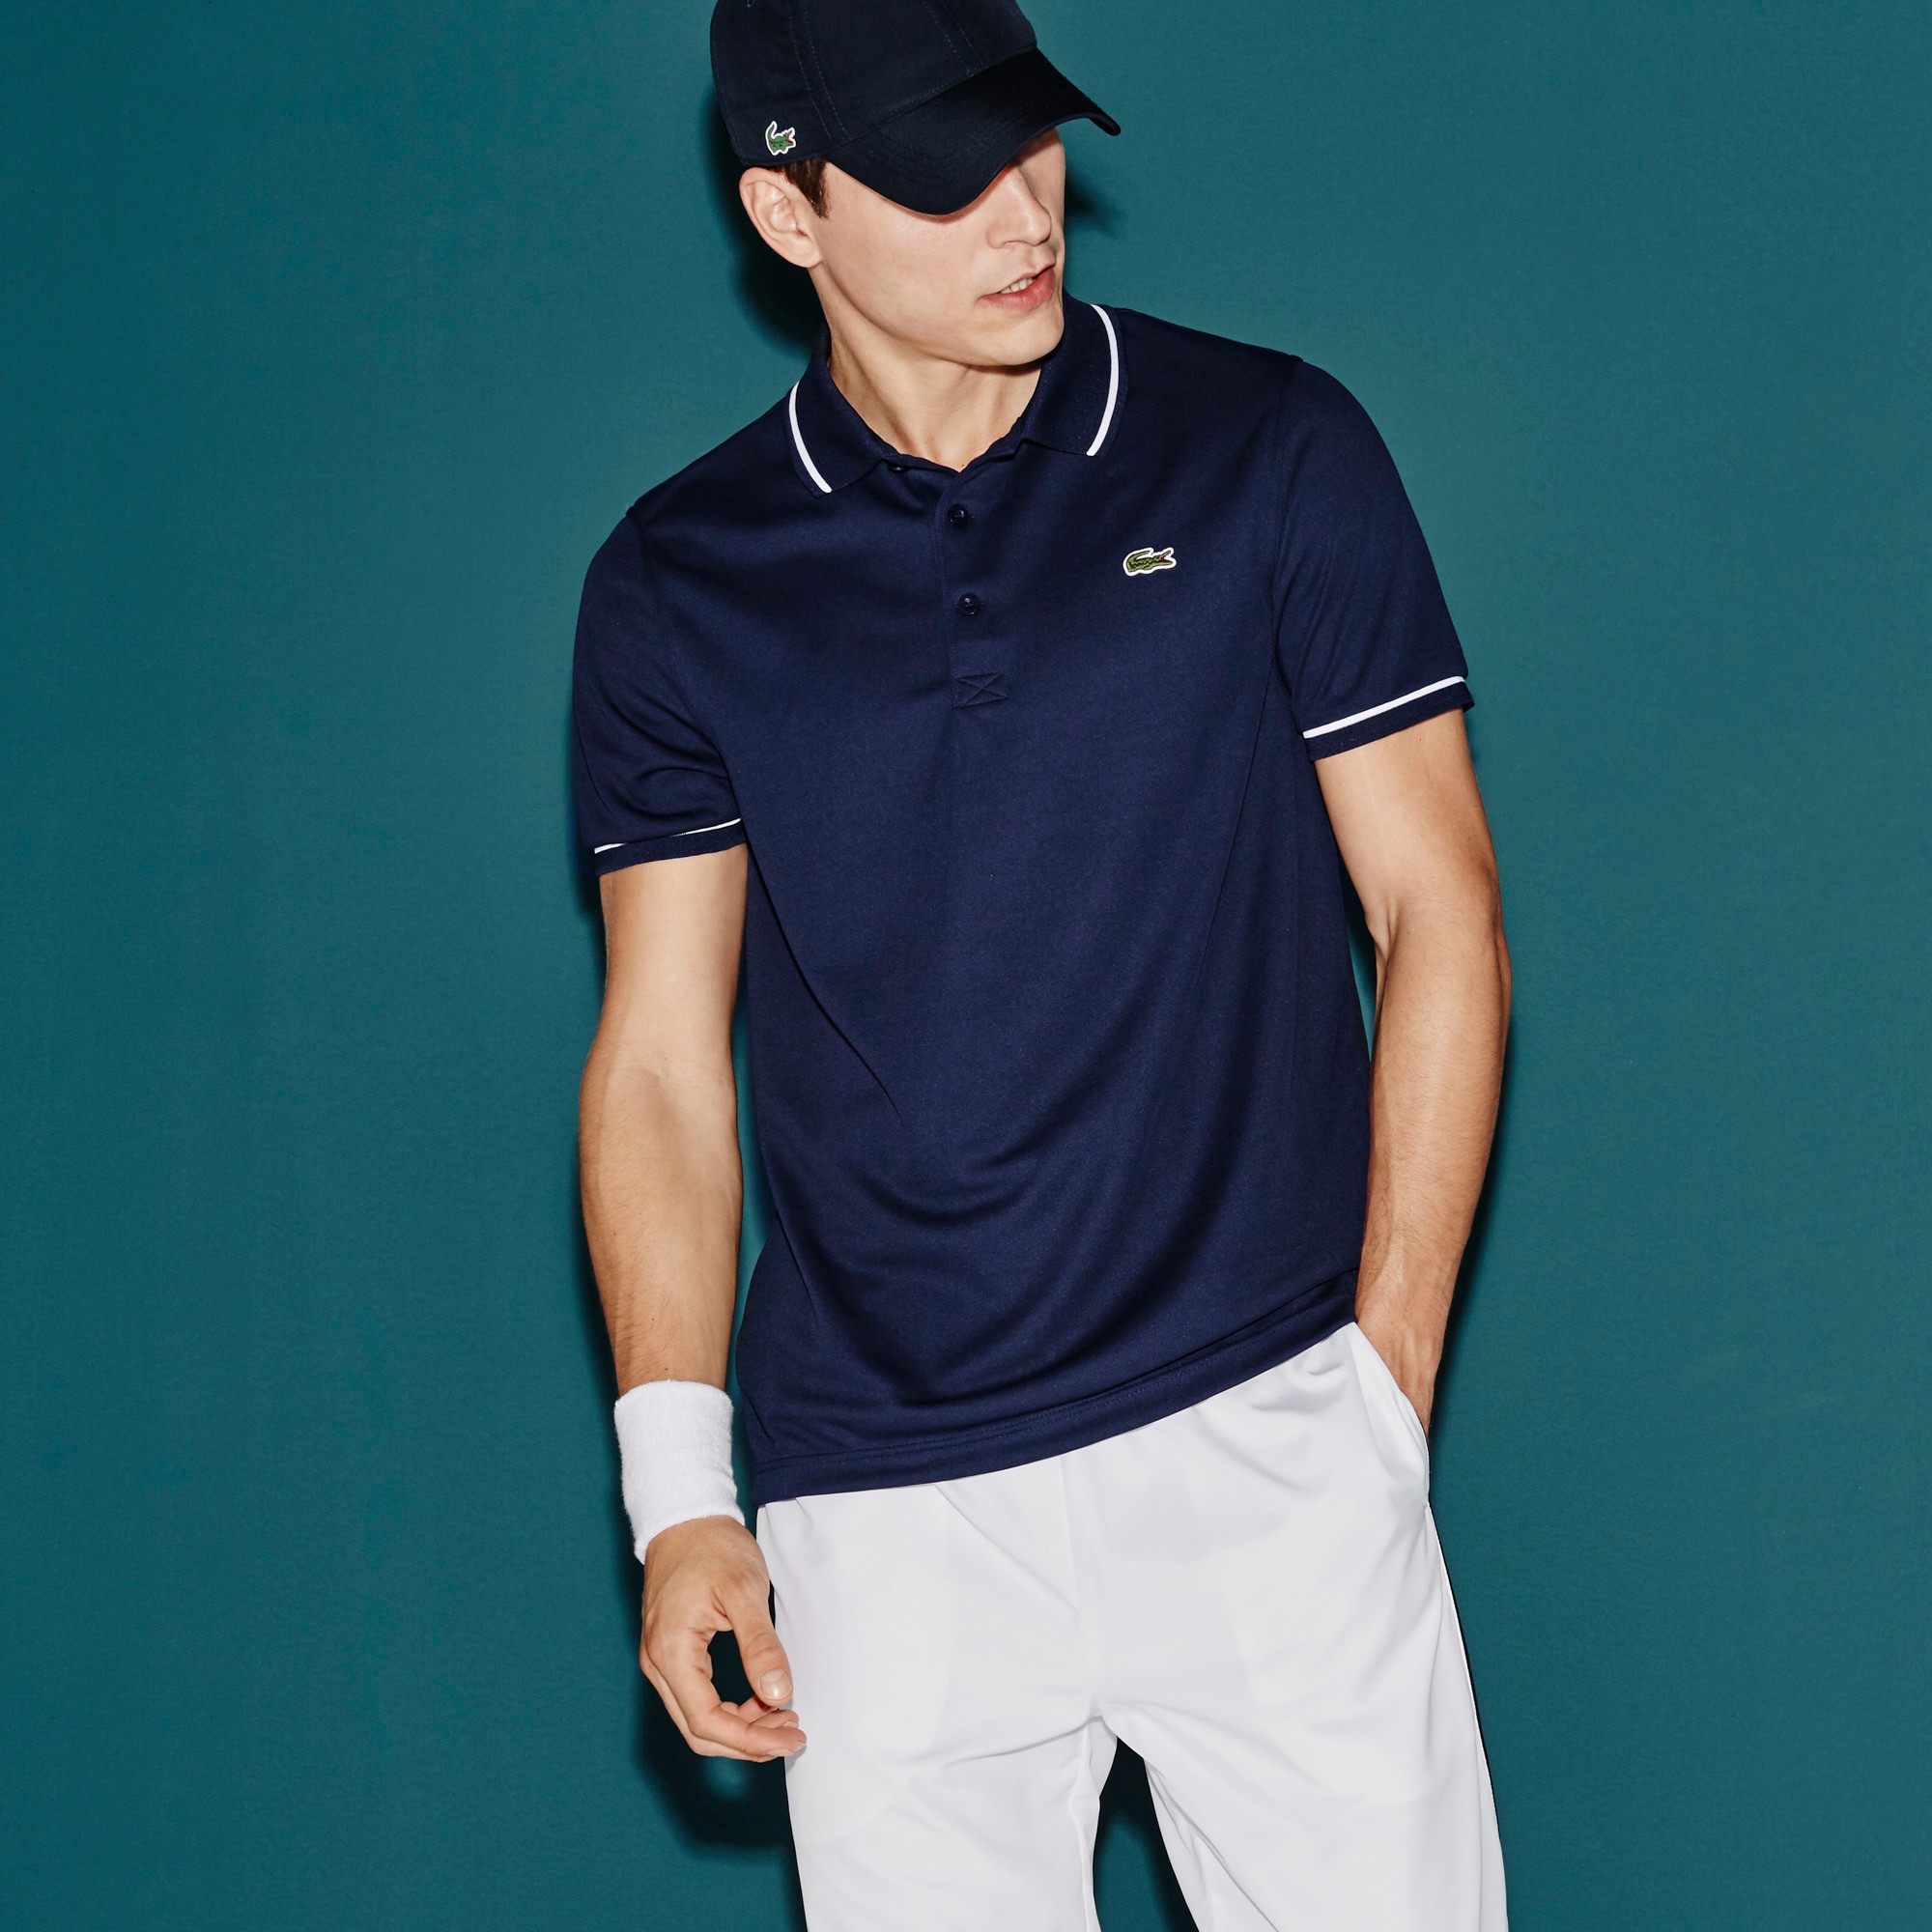 8a162c3c Lacoste Men's Sport Ultra-Dry Piping Tennis Polo Shirt - Navy Blue/White